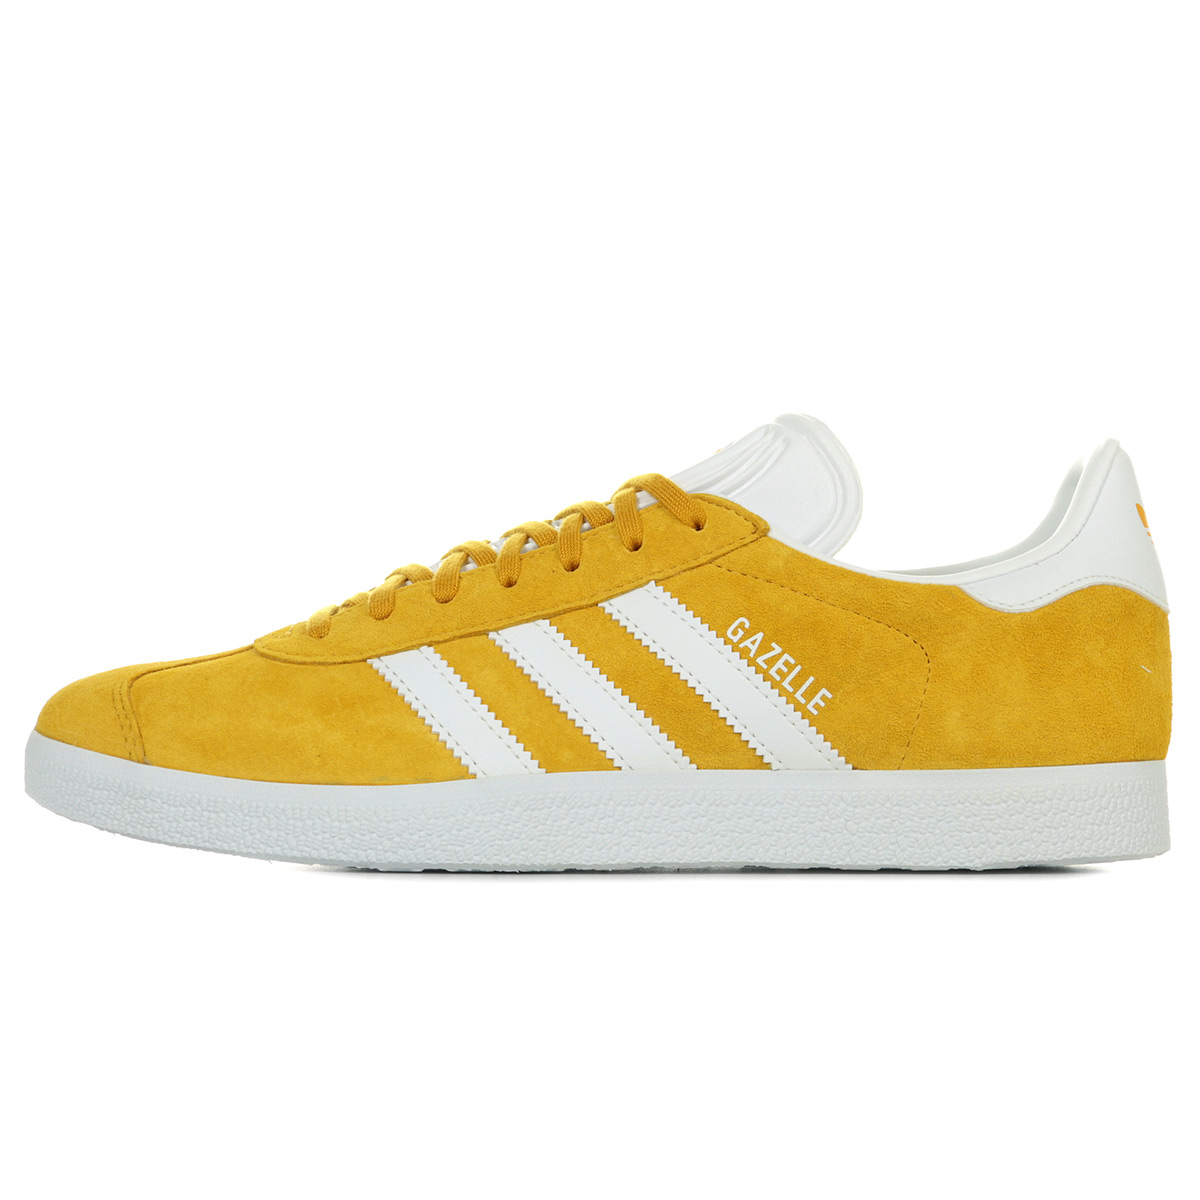 adidas Gazelle EE5507, Baskets mode homme